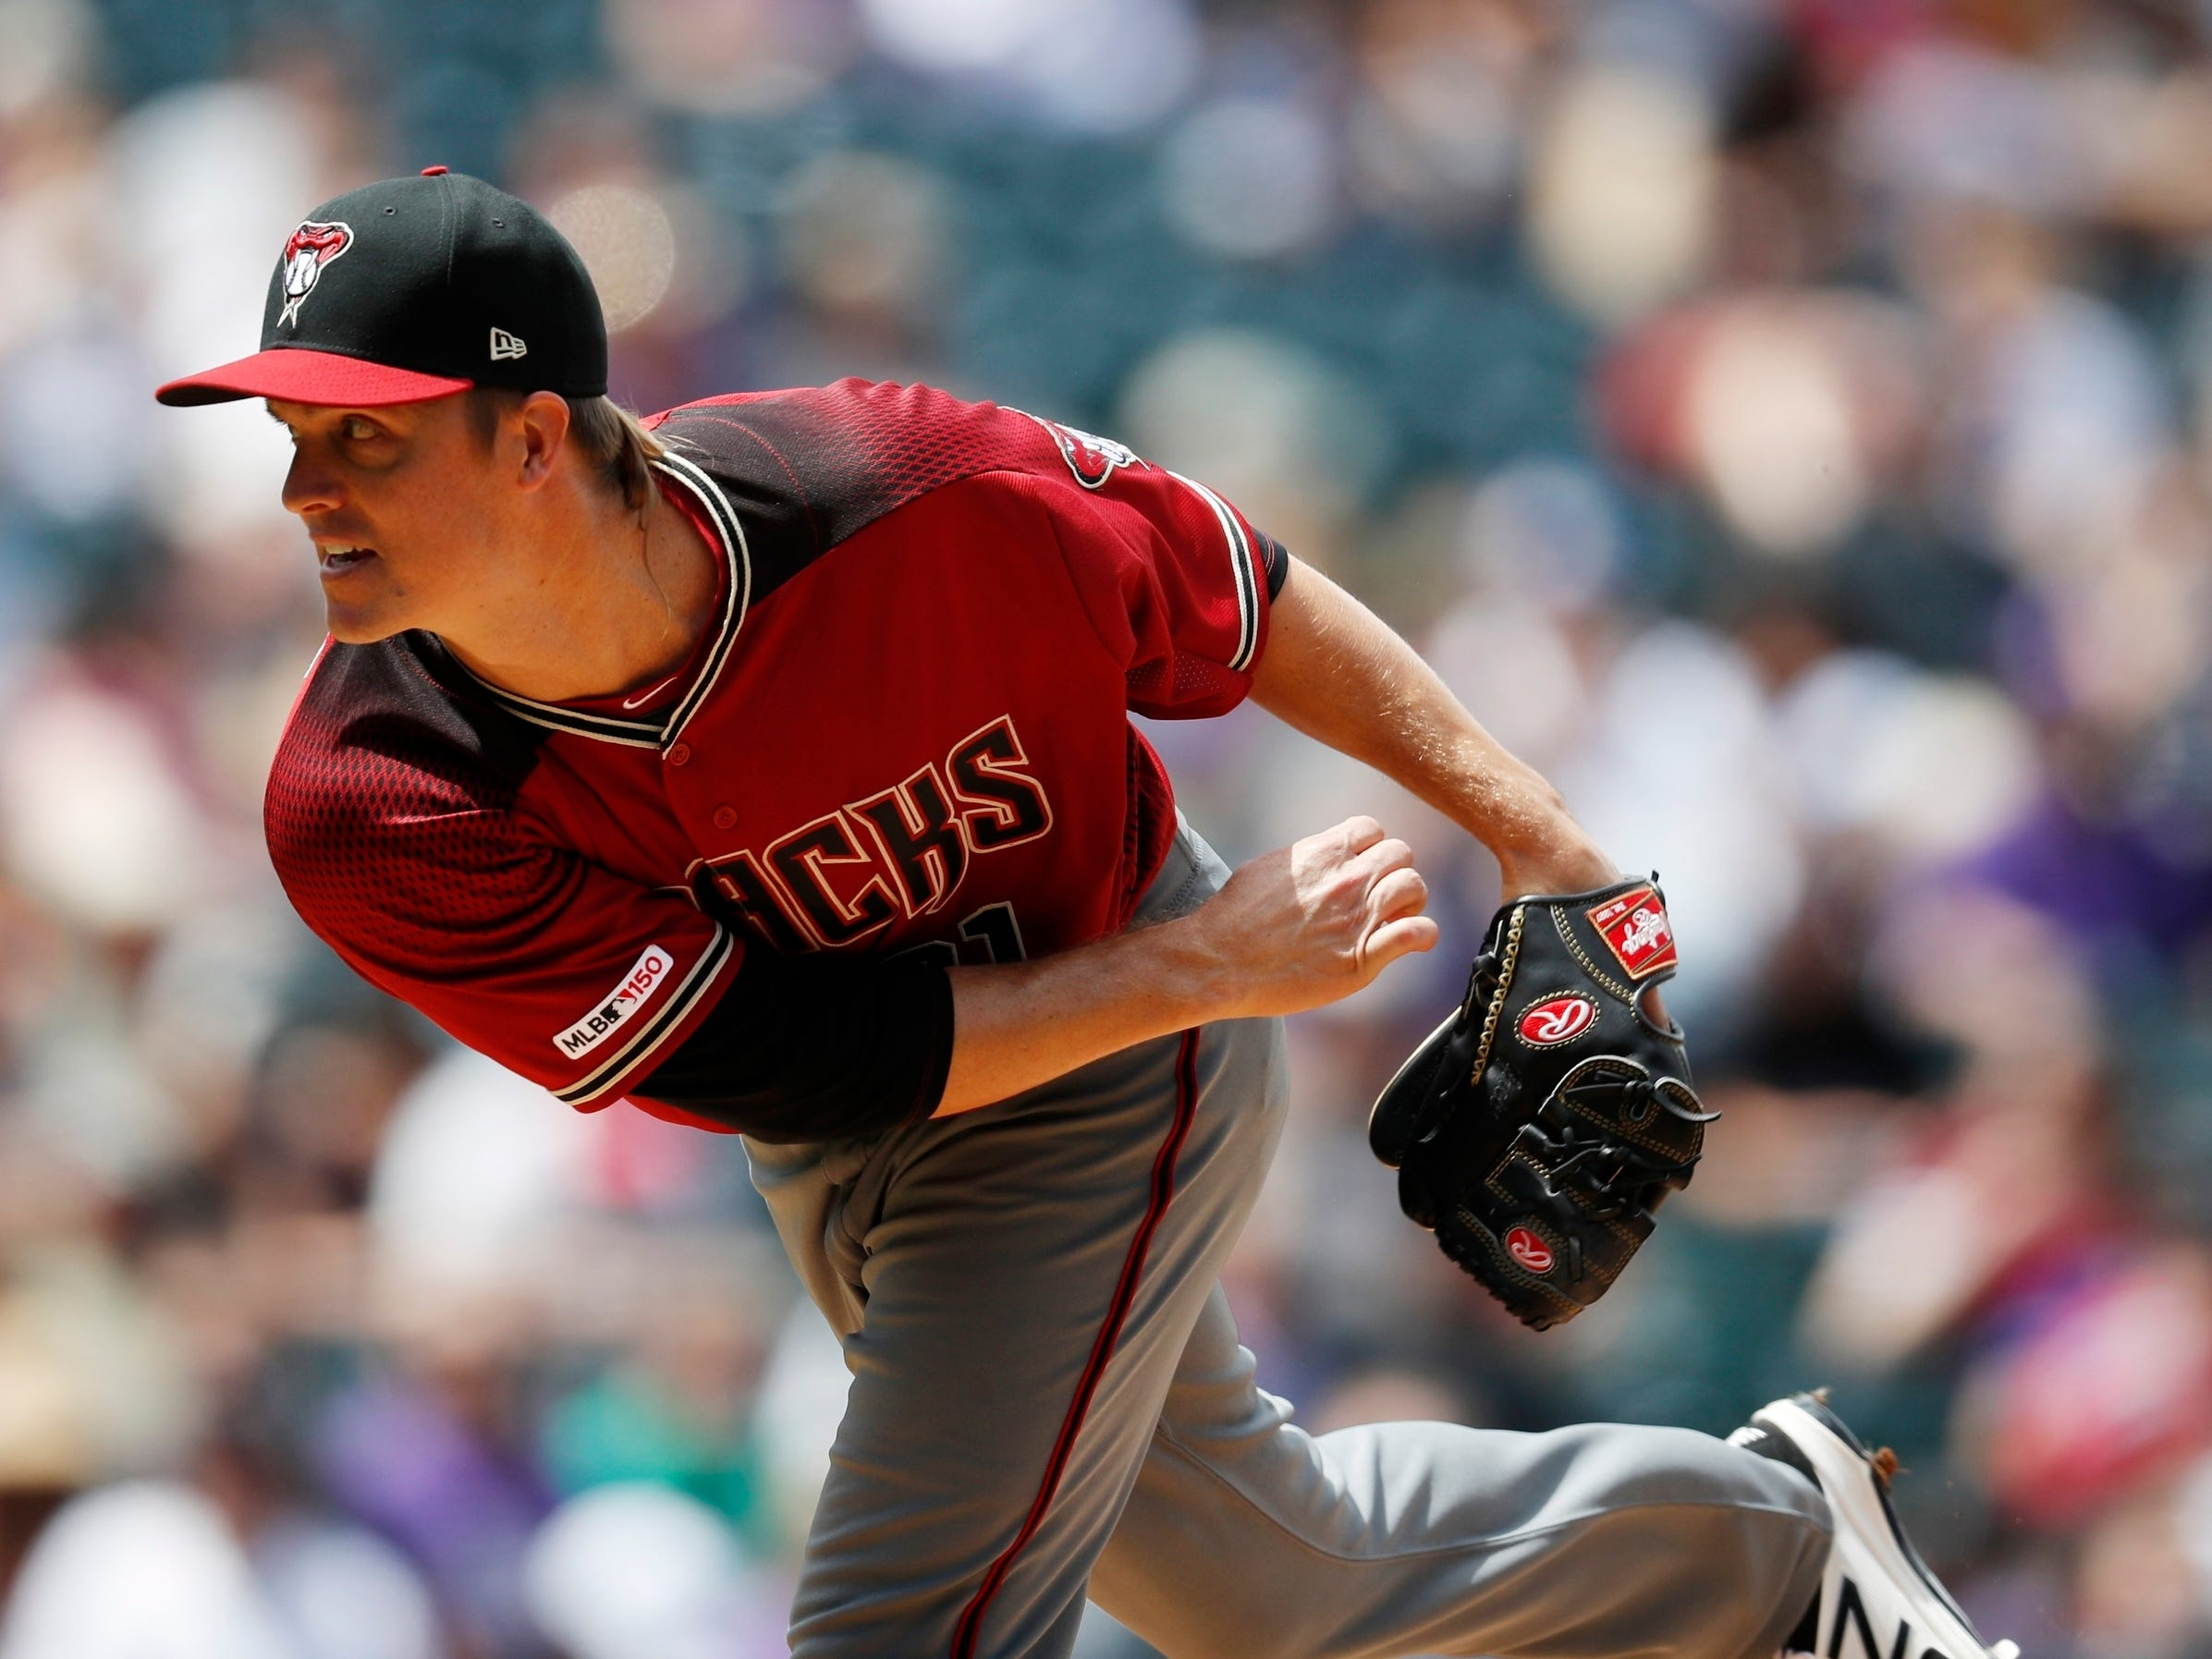 Arizona Diamondbacks starting pitcher Zack Greinke works against the Colorado Rockies in the first inning of a baseball game Sunday, May 5, 2019, in Denver. (AP Photo/David Zalubowski)